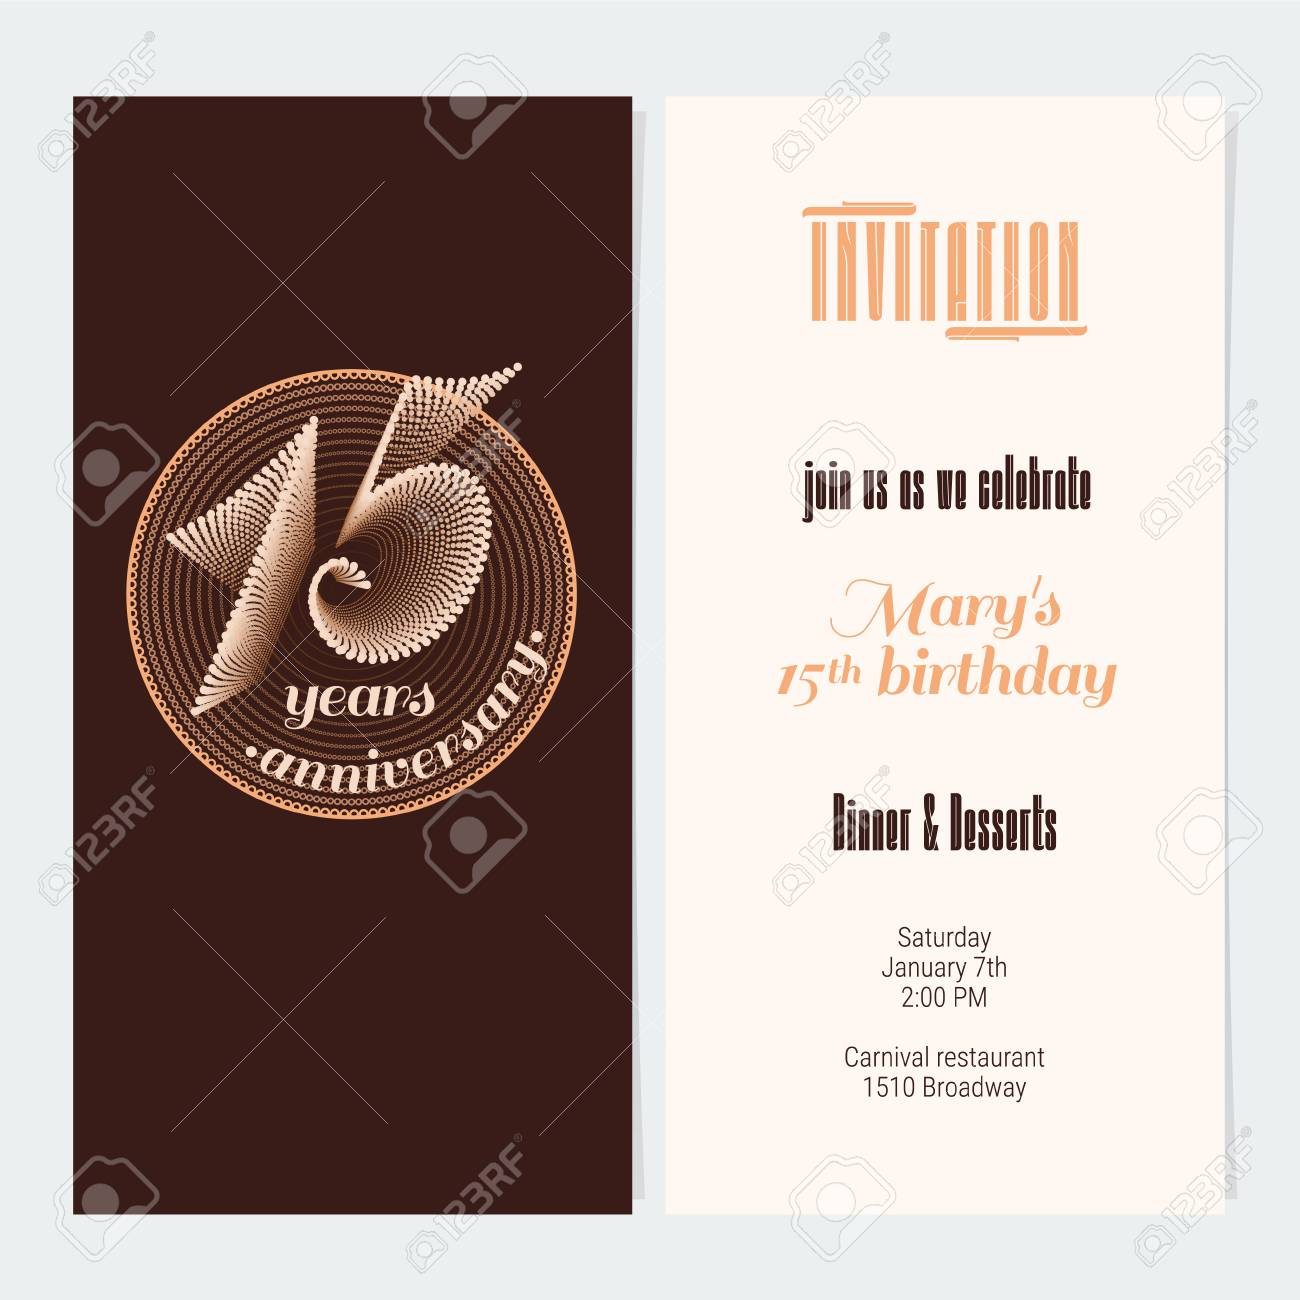 15 Years Anniversary Invitation Vector Illustration Graphic Design Element For 15th Birthday Card Party